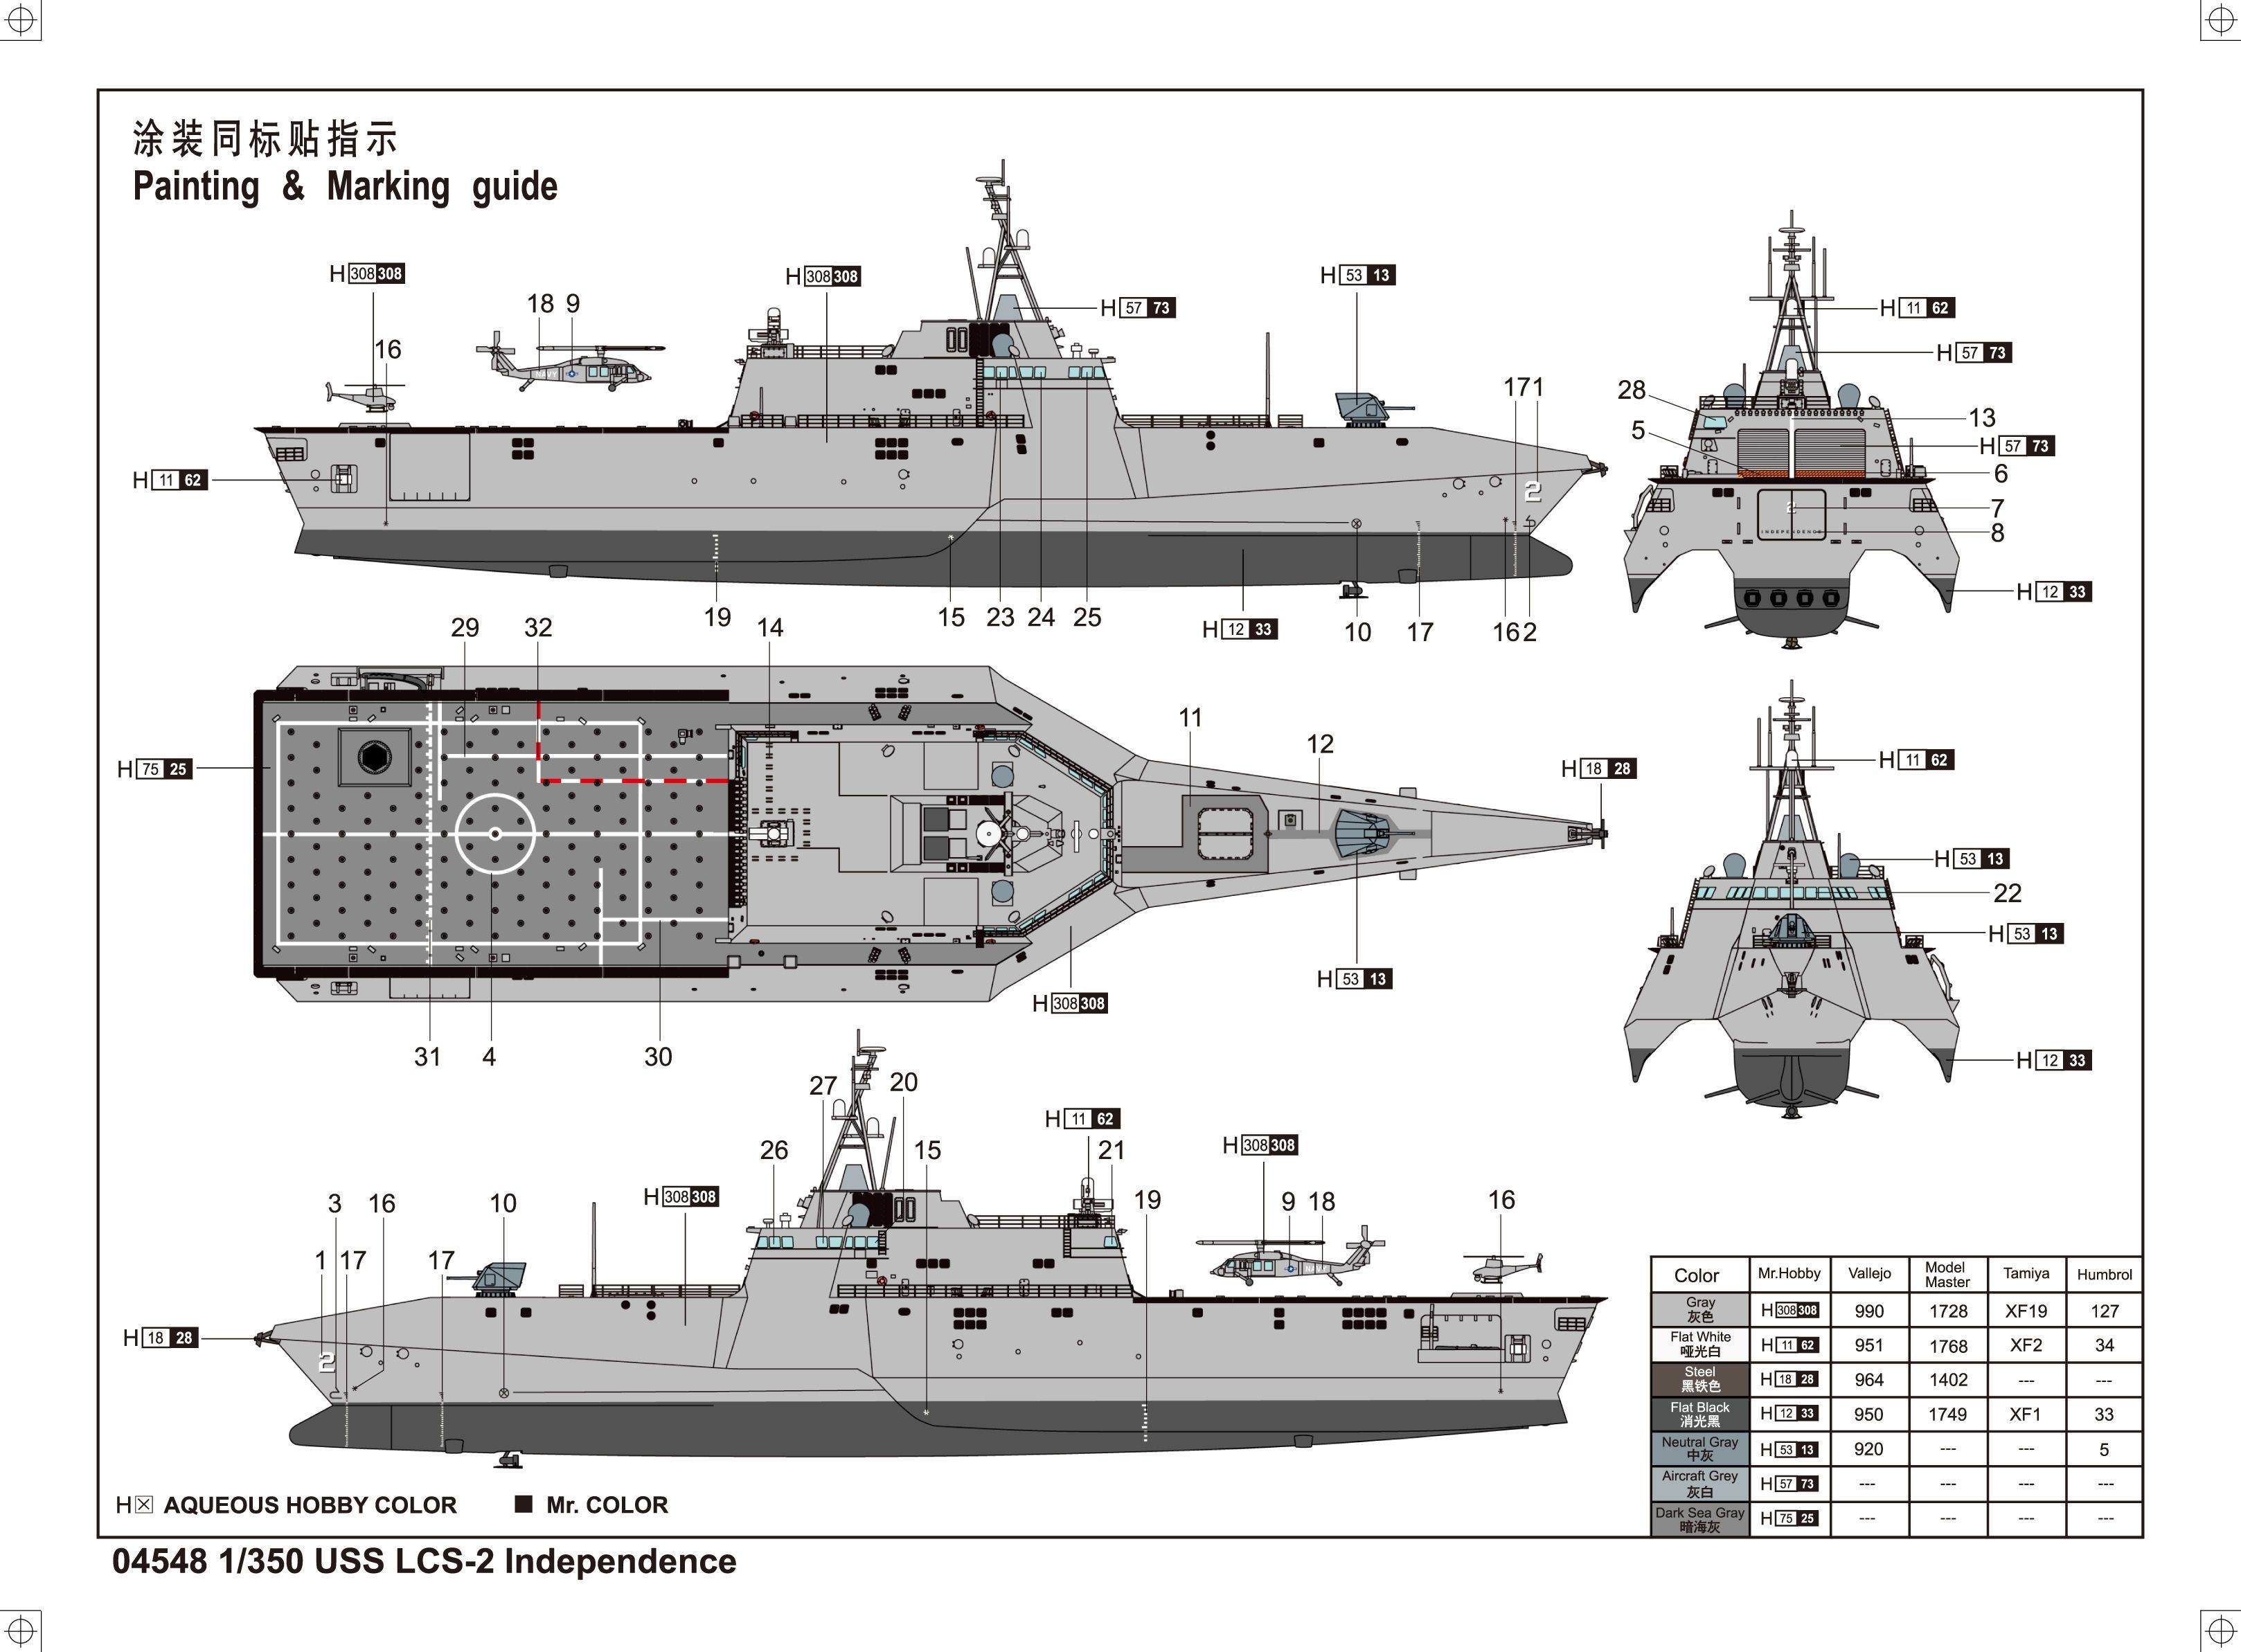 Uss independence littoral combat ship military scale models aircraft models ships military figures dioramas modeling tips